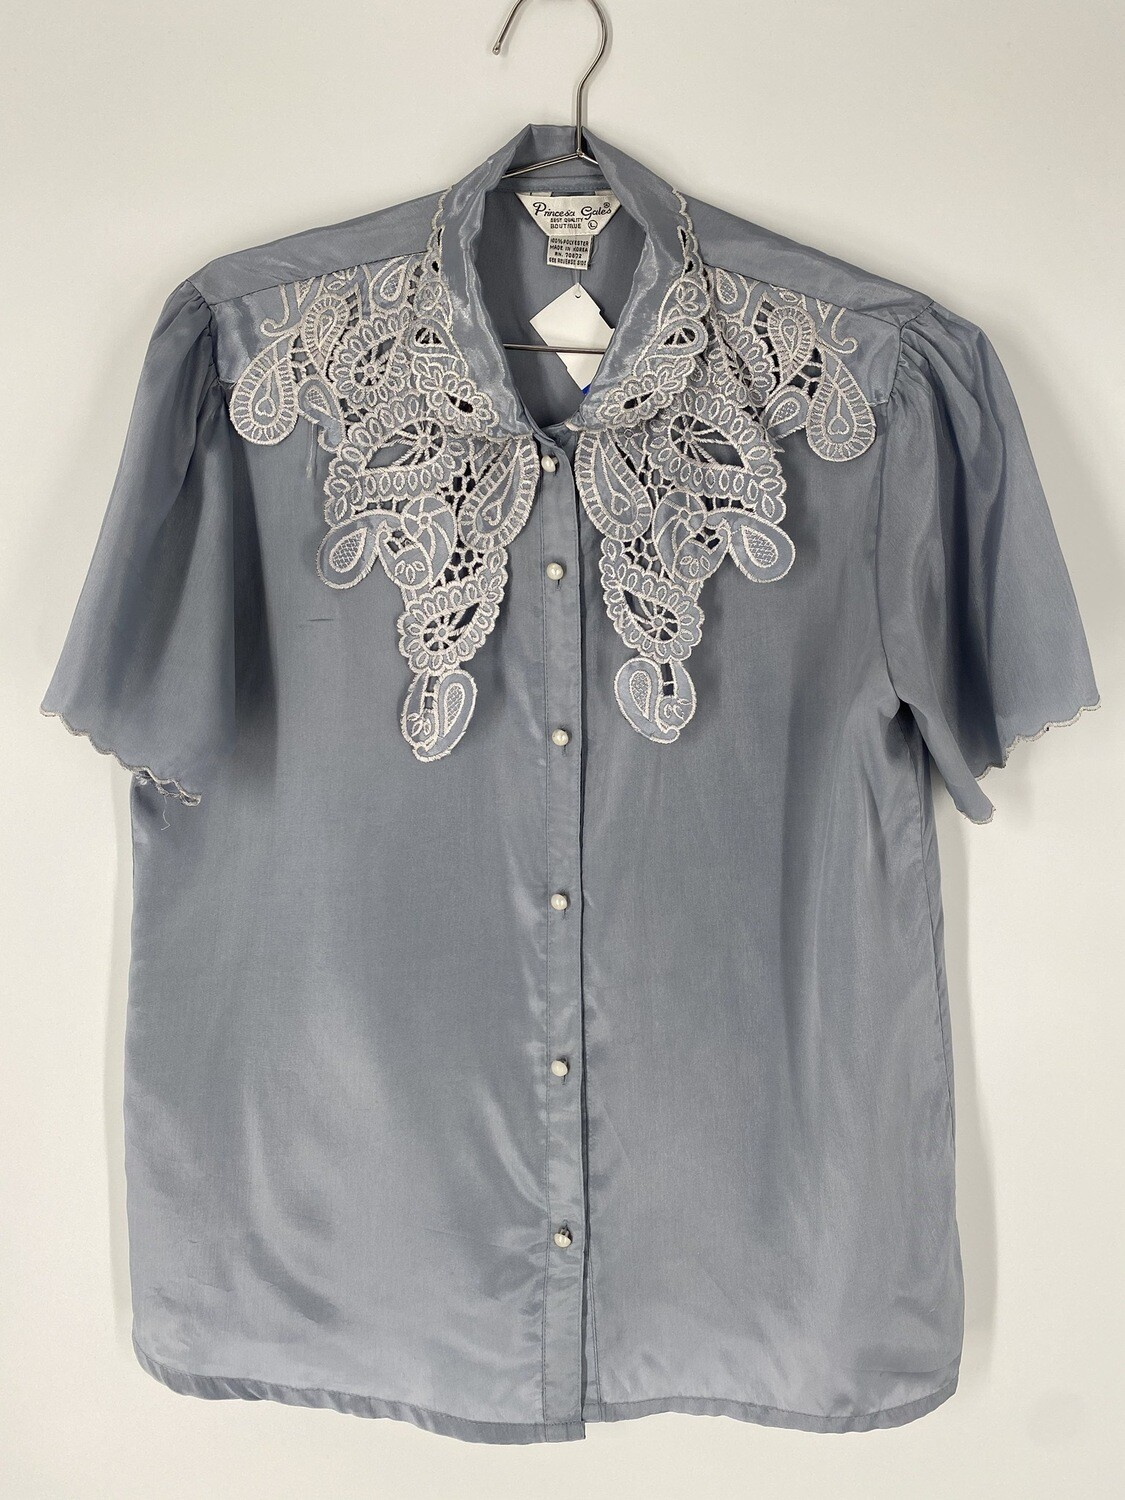 Princesa Gales Button-Up Embroidered Top Size L